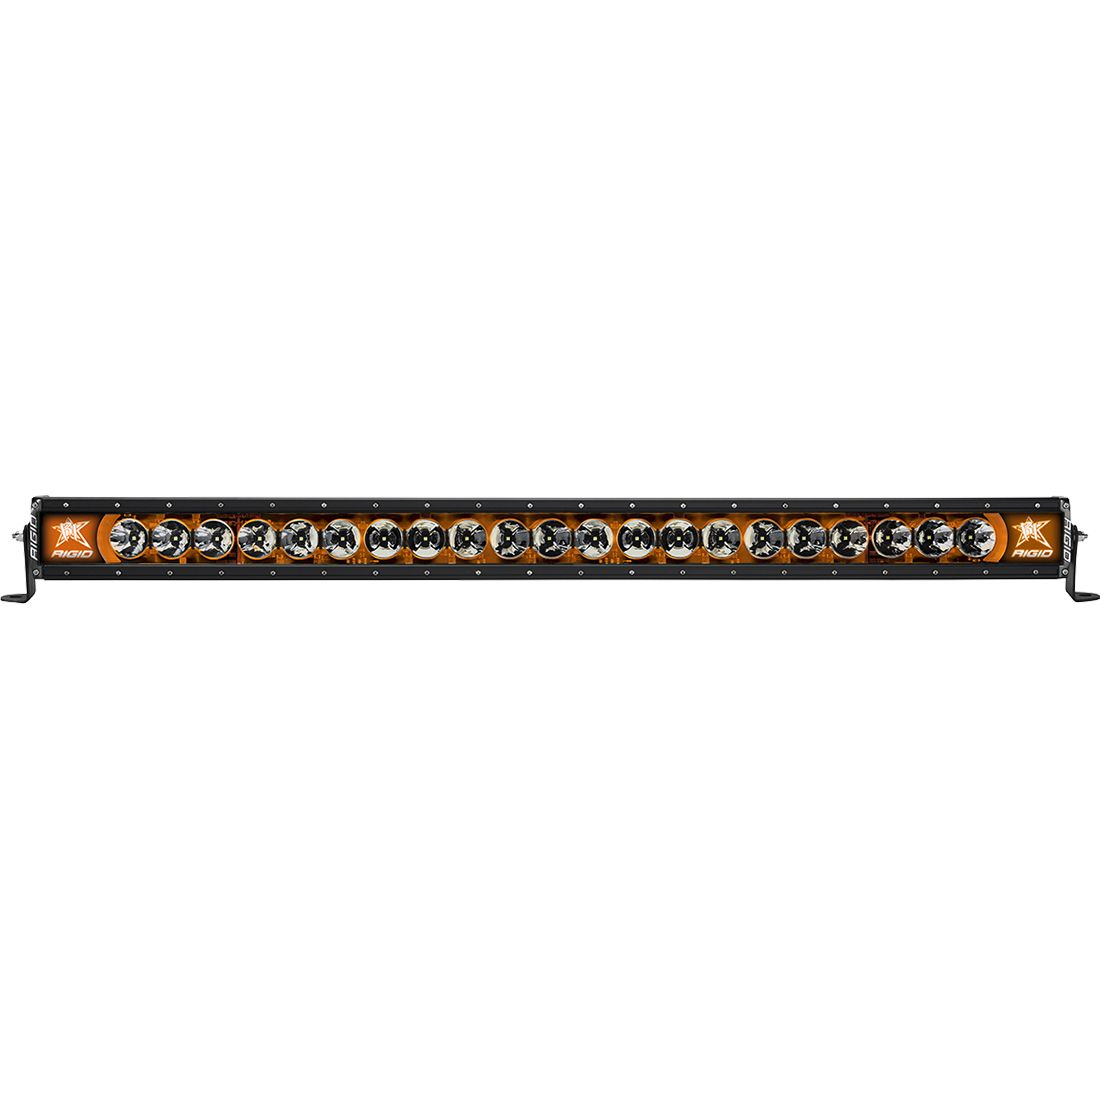 Rigid Radiance 40 Inch LED Light Bar